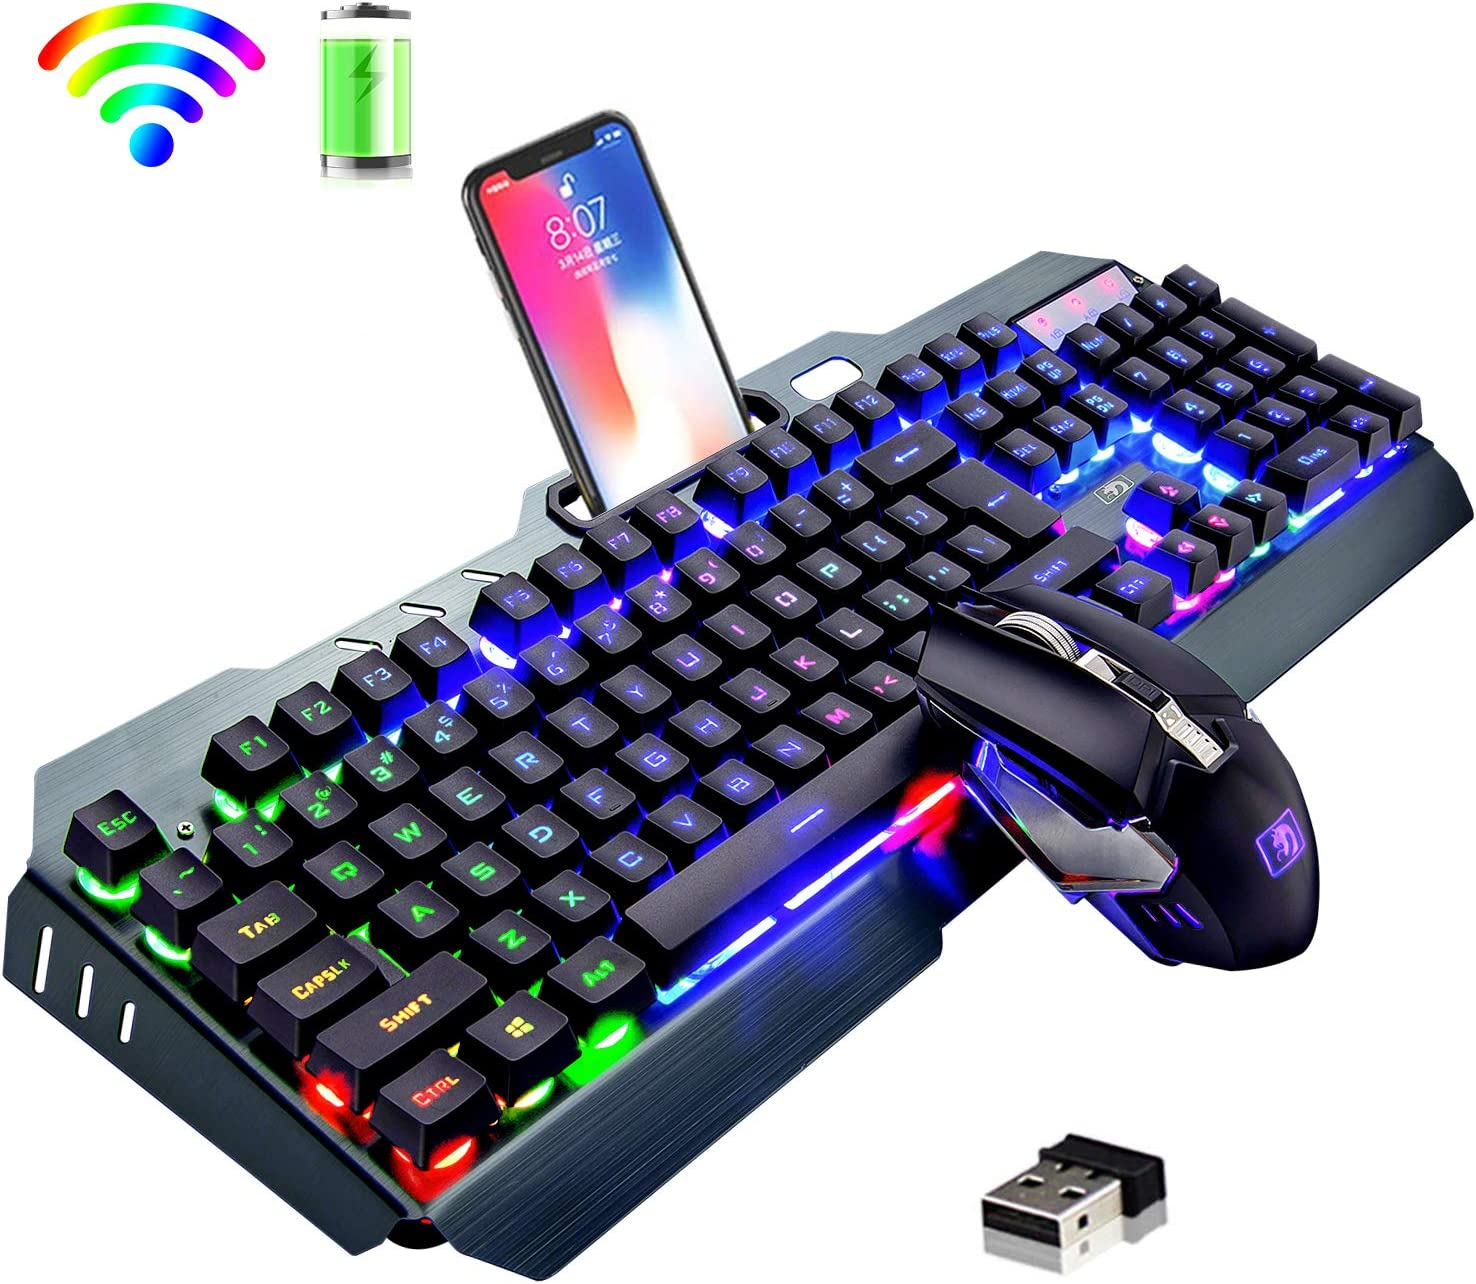 Top Sellers in Computer Keyboard & Mouse Combos - Wireless Keyboard and Mouse,Rainbow LED Backlit Rechargeable Keyboard Mouse with 3800mAh Battery Metal Panel,Mechanical Feel Keyboard and 7 Color Gaming.